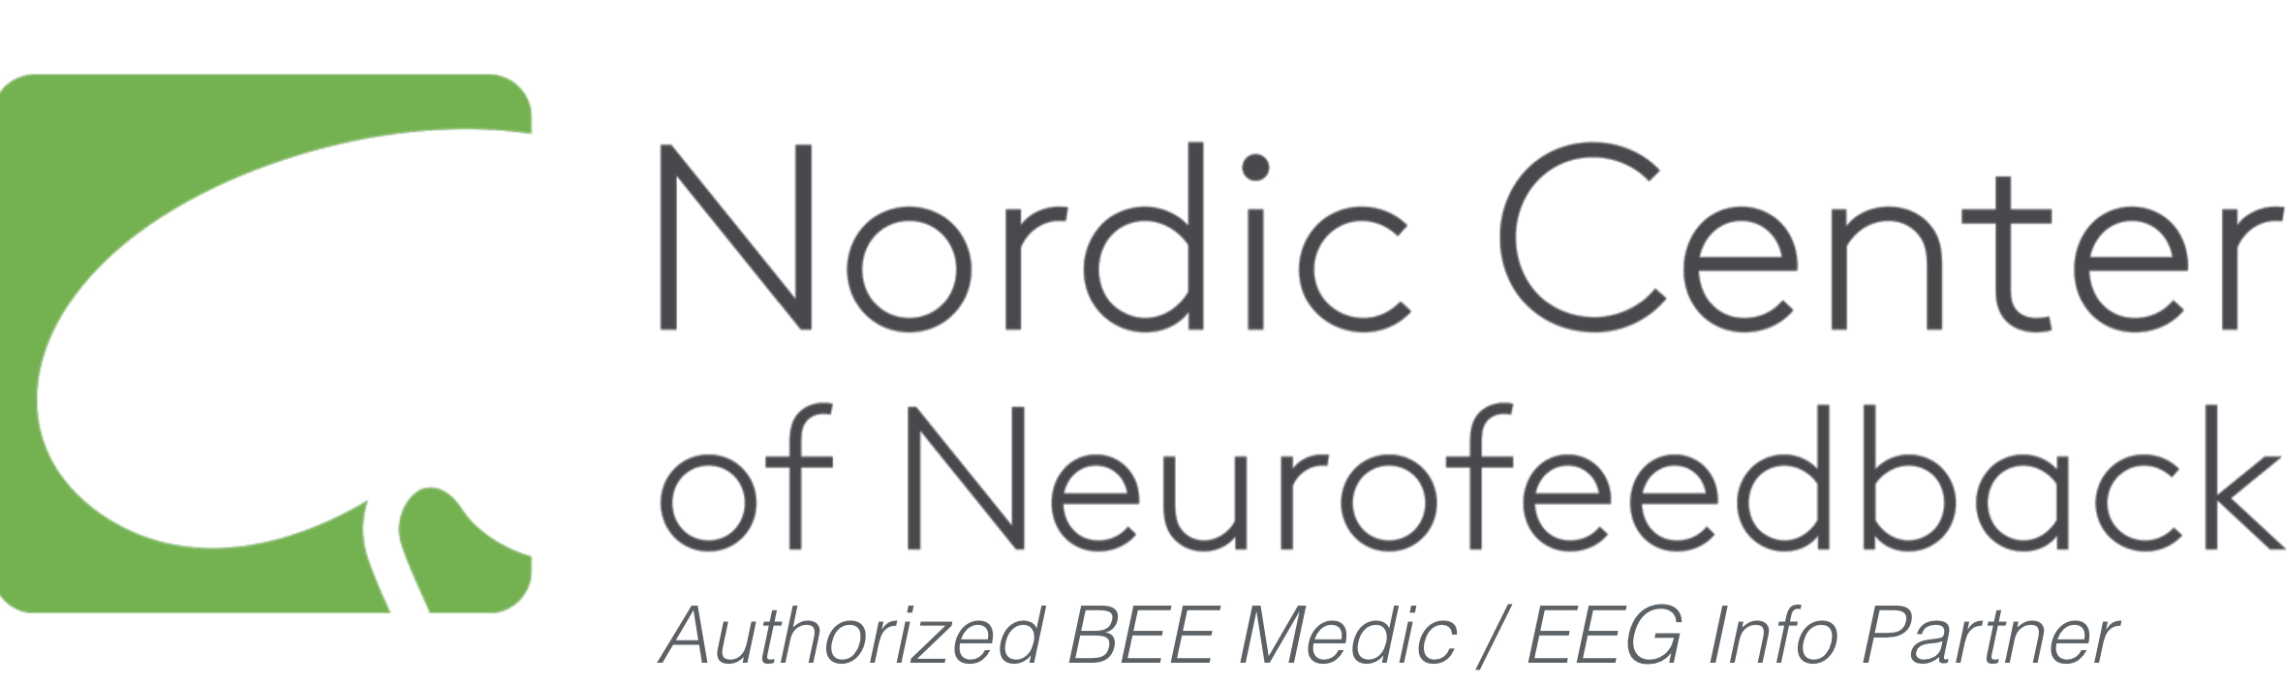 Nordic Center of Neurofeedback